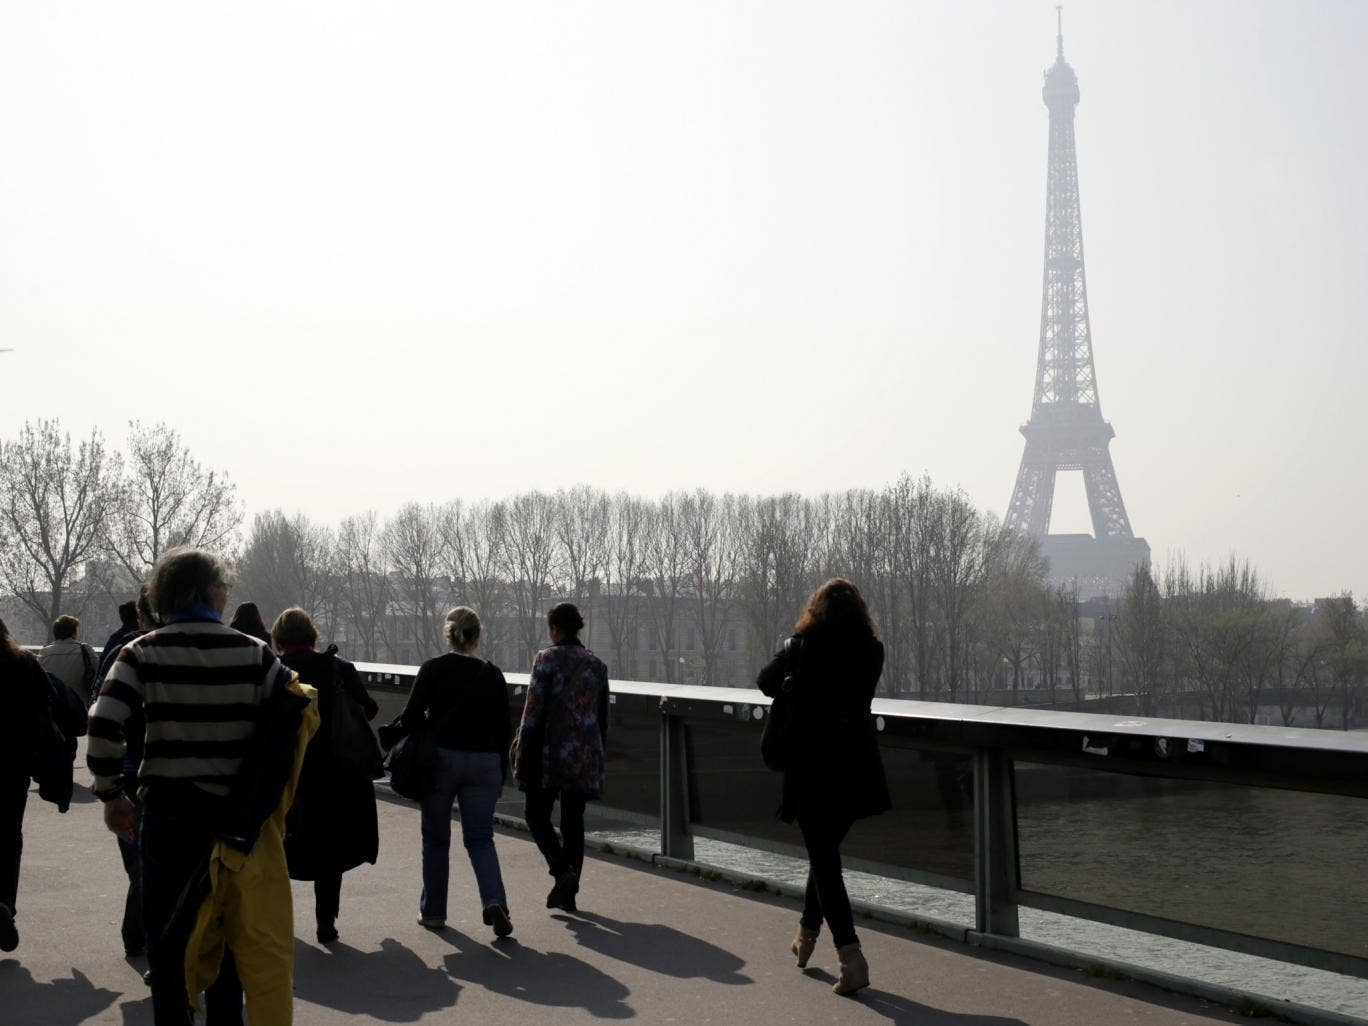 A picture taken on 14 March 2014 shows the Eiffel tower in central Paris through a haze of pollution. More than 30 departments in France have been hit by maximum level pollution alerts